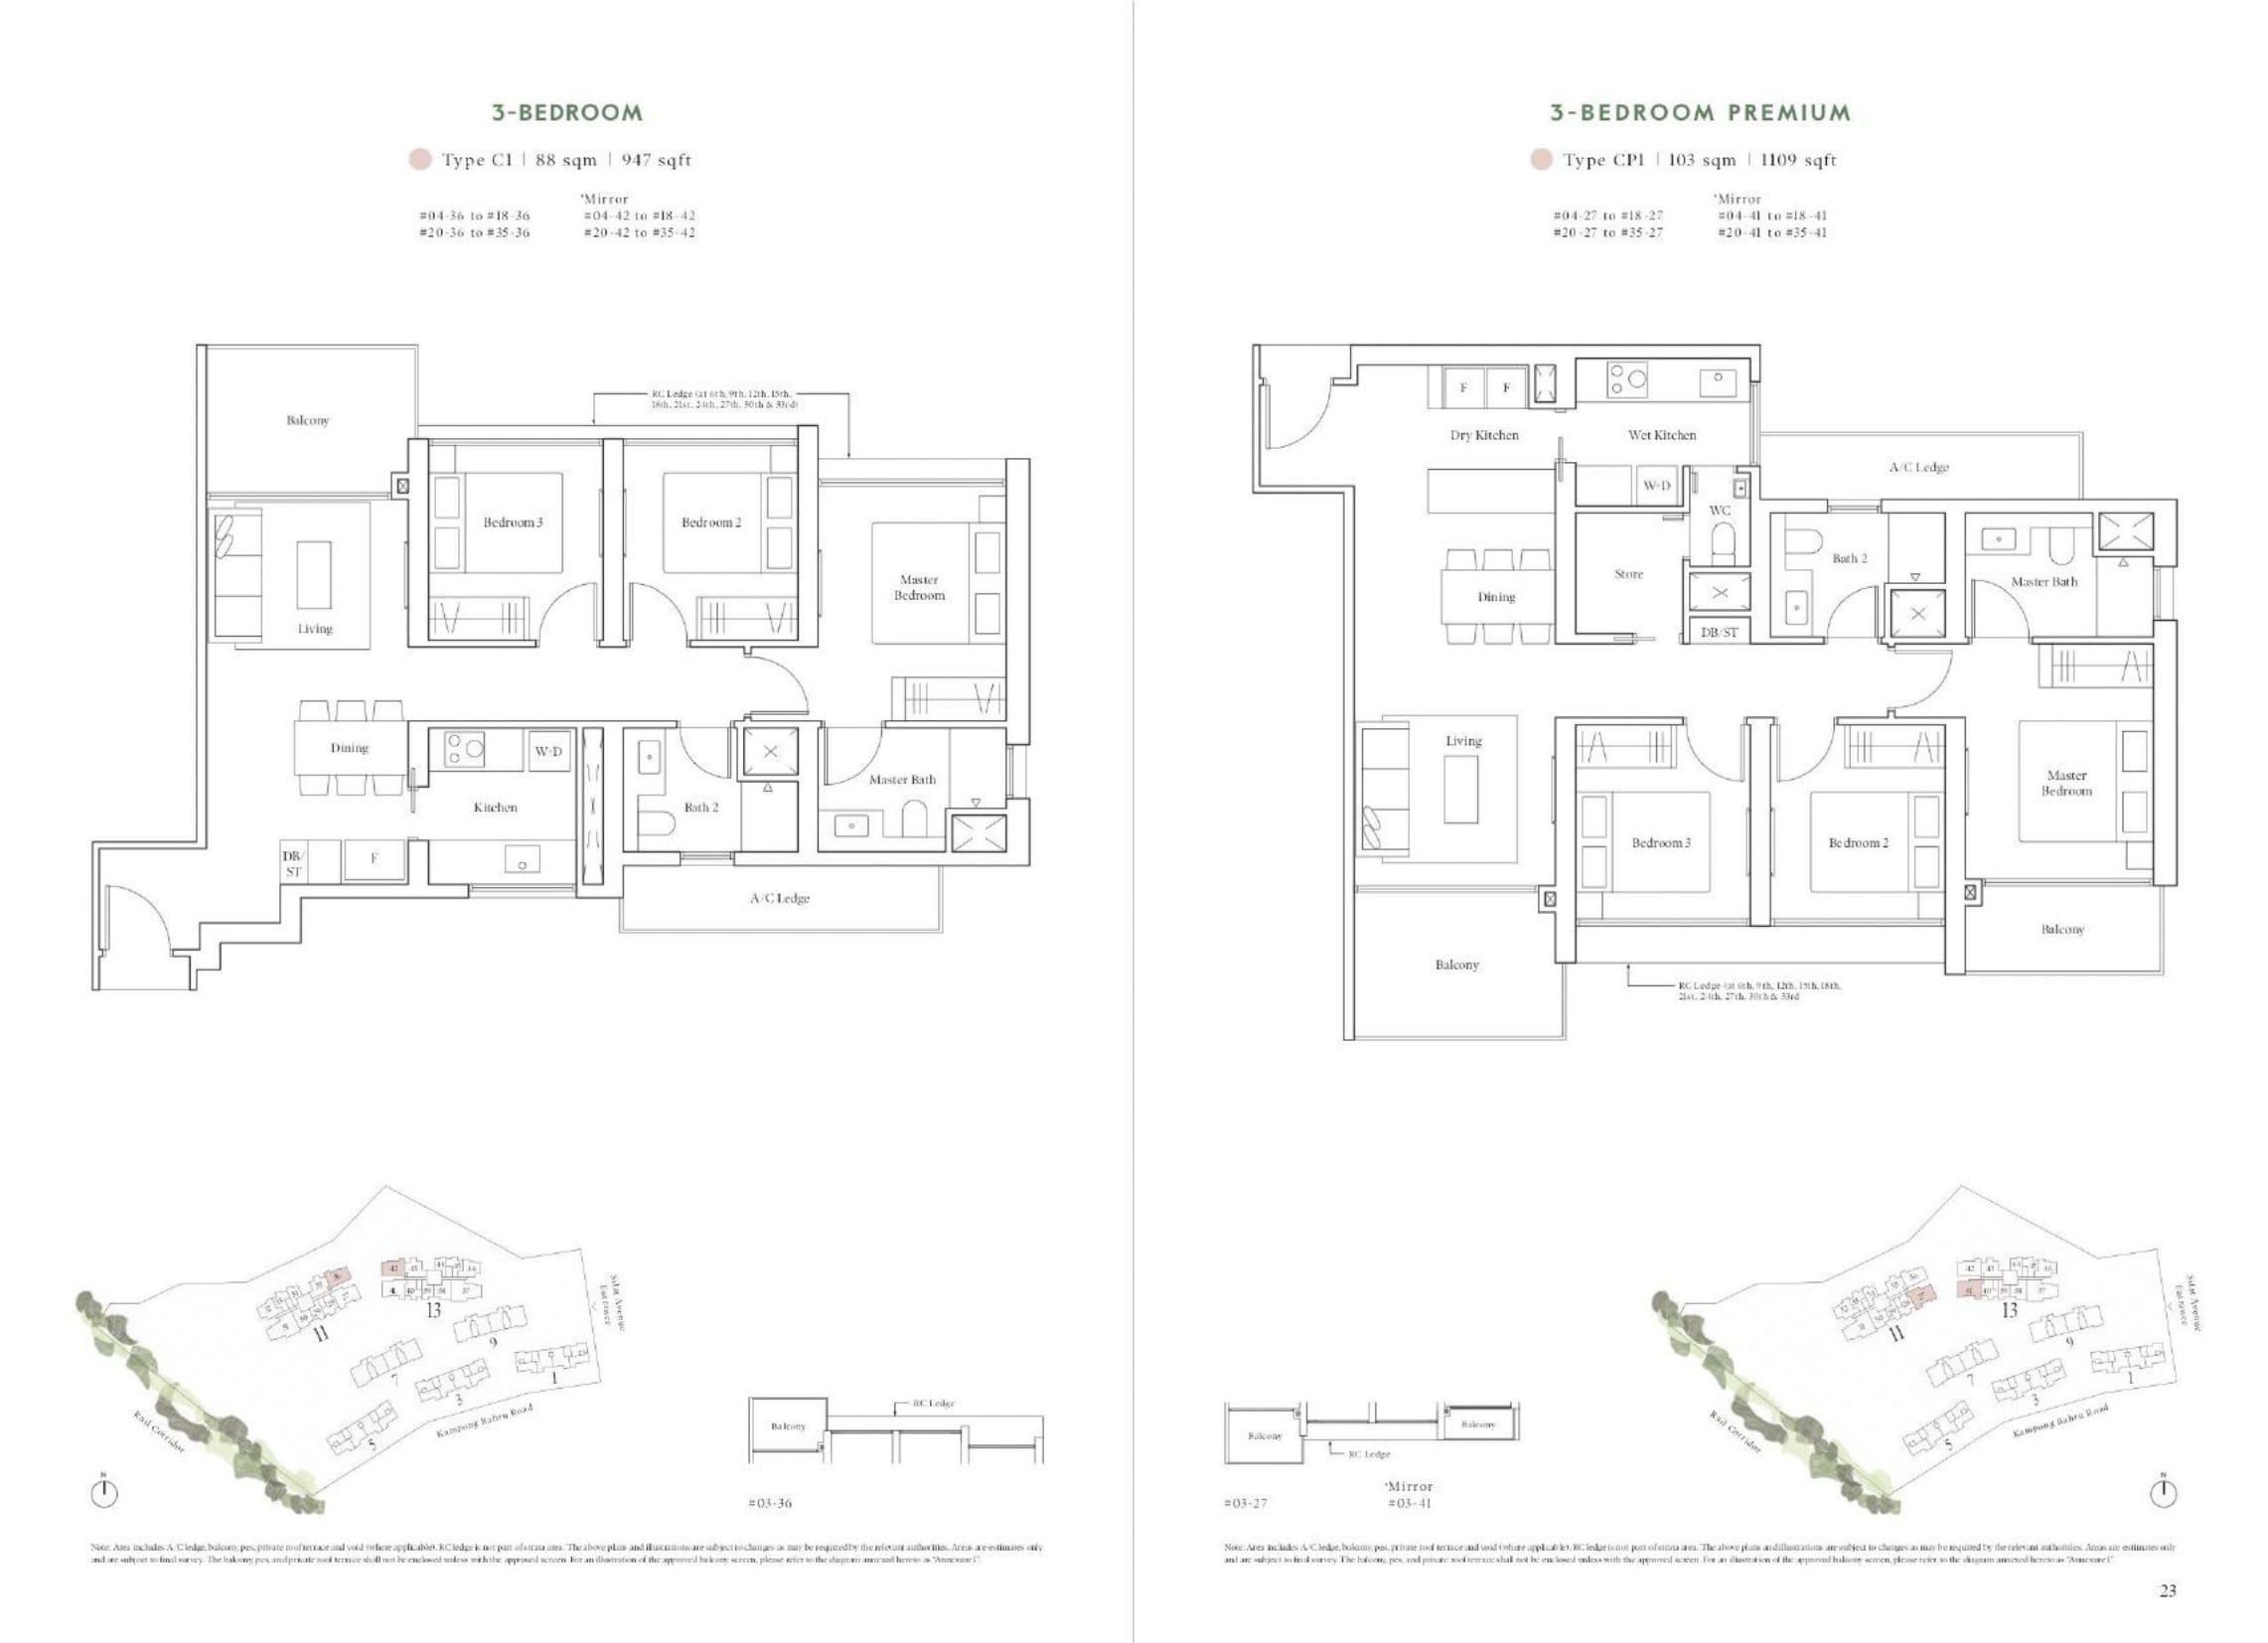 Avenue South Residence's Horizon Collection three-bedroom & three-bedroom premium types